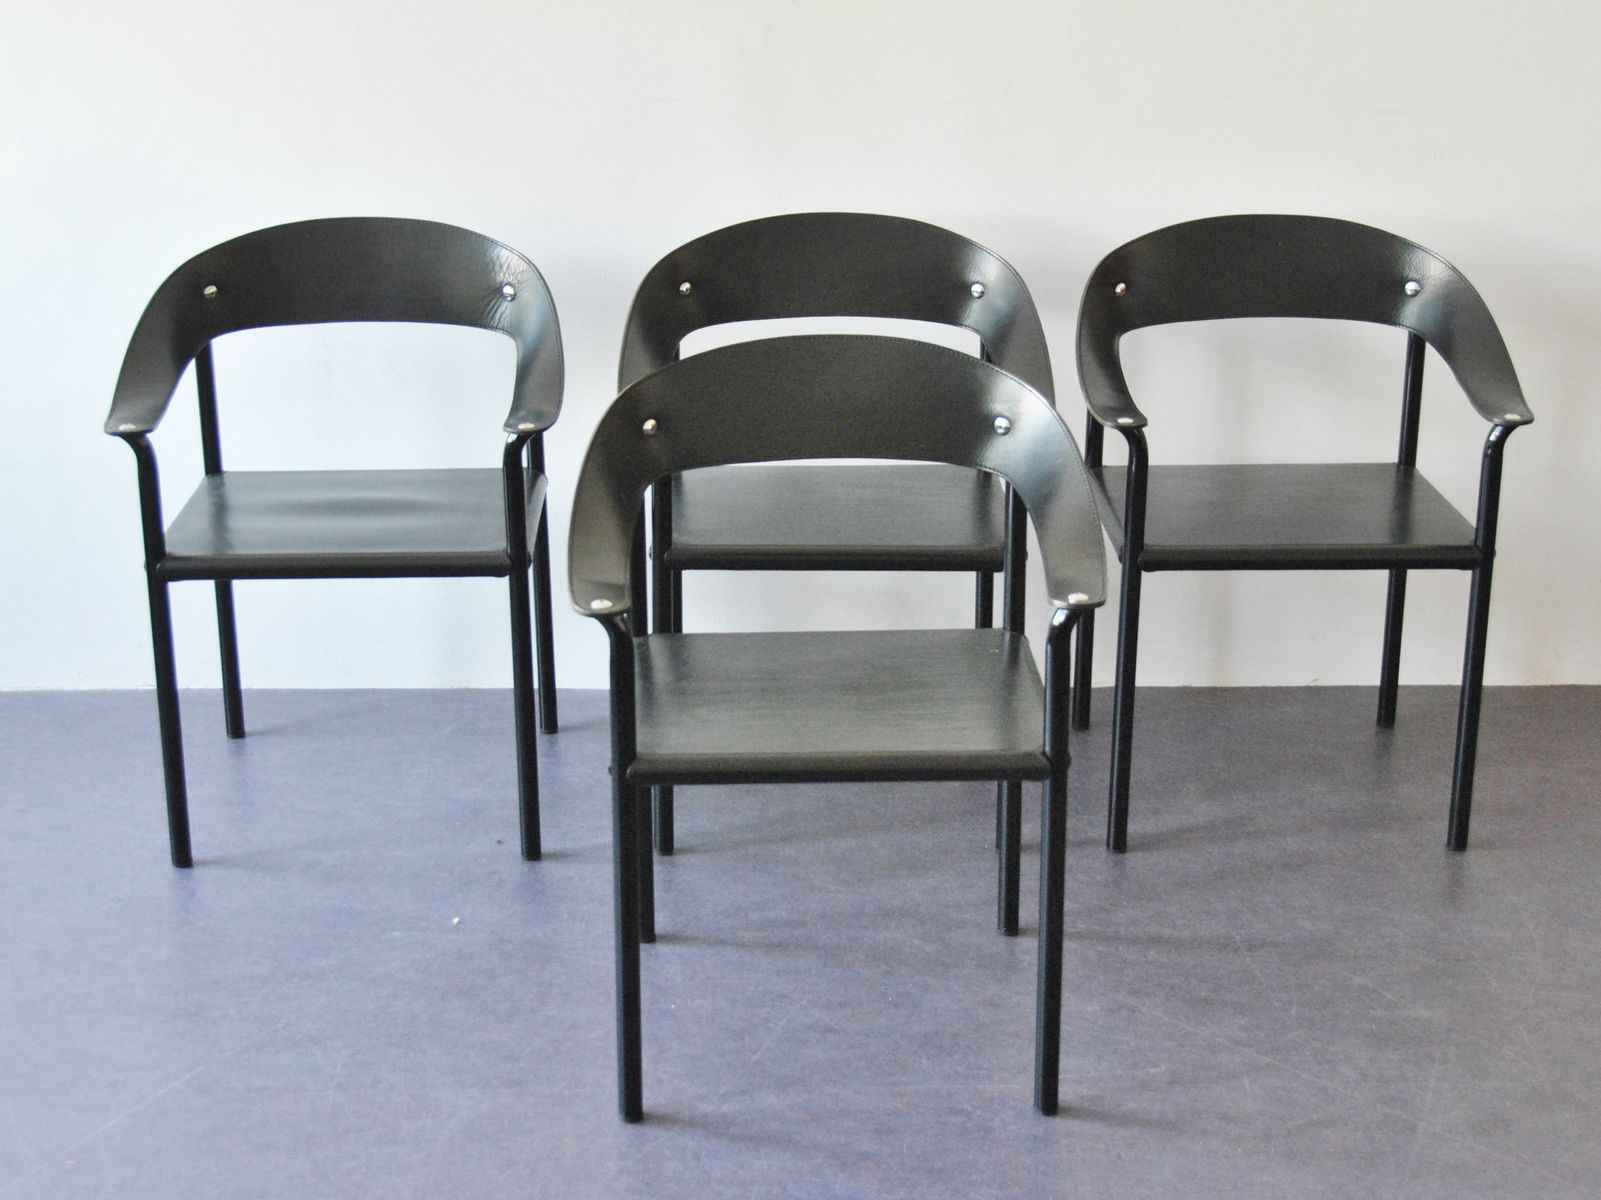 Vintage Leather And Metal Dining Chairs Set Of 4 For Sale At Pamono